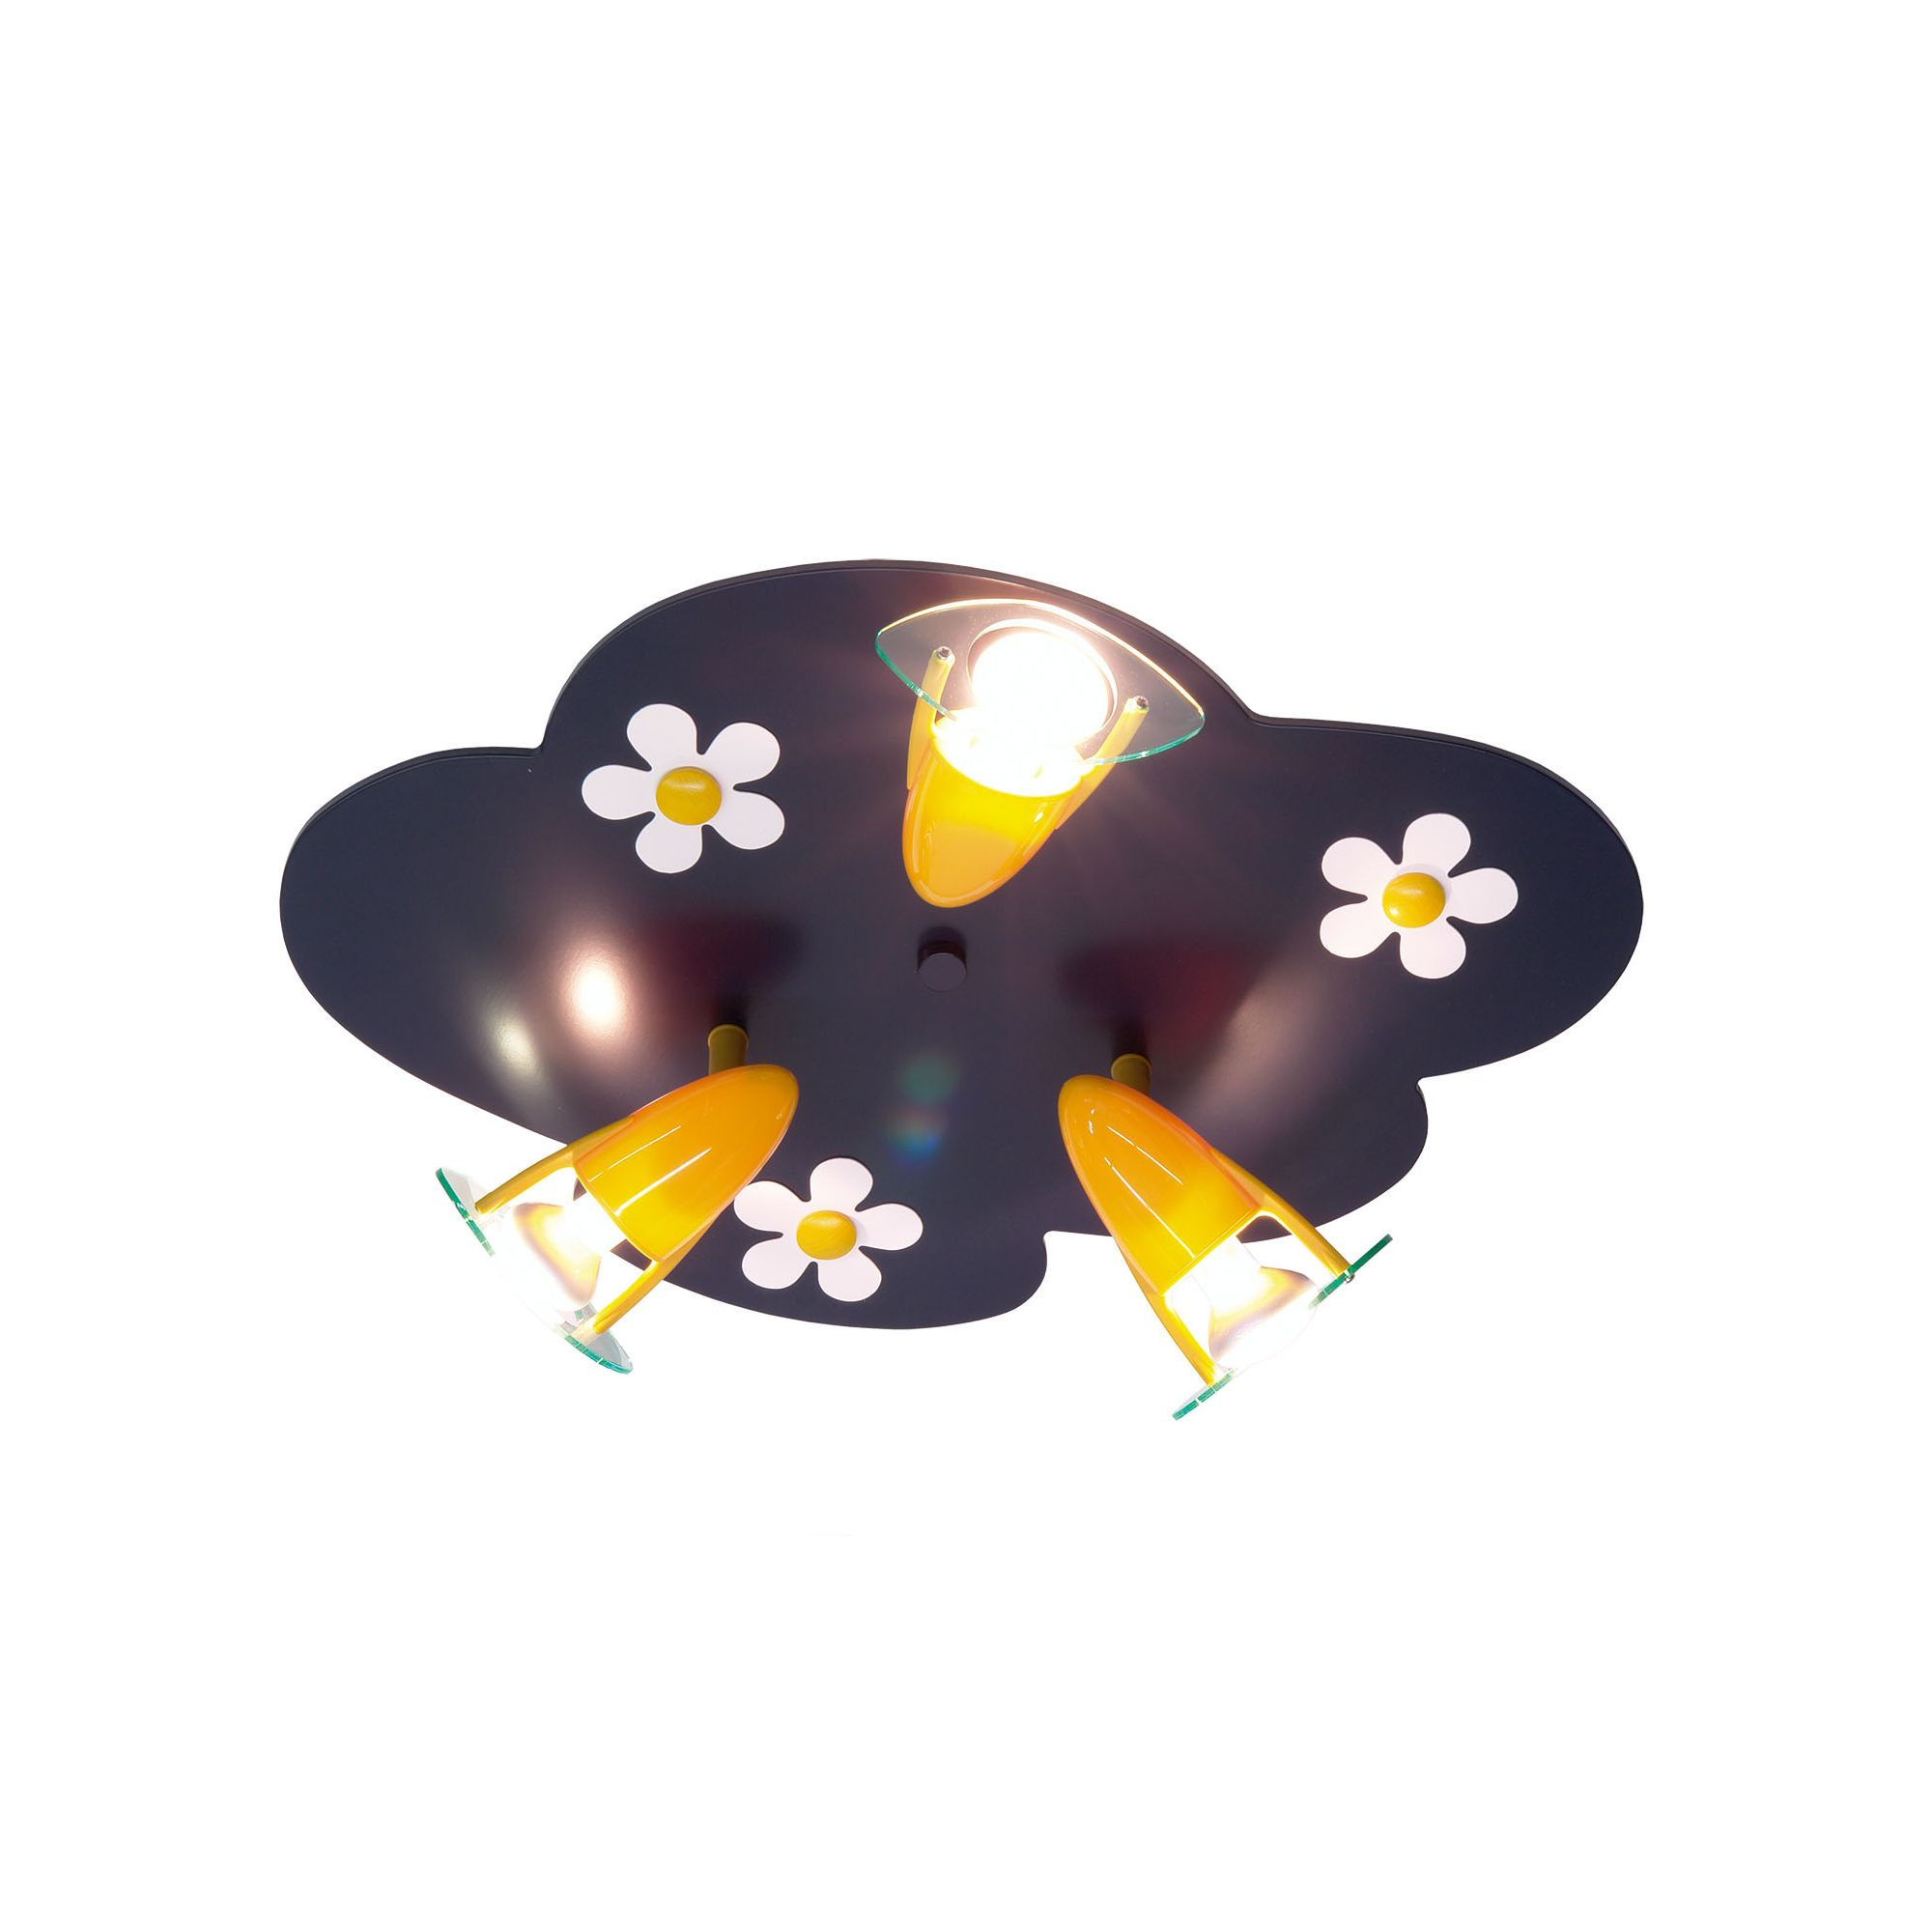 niermann-standby-flower-power-ceiling-spotlight